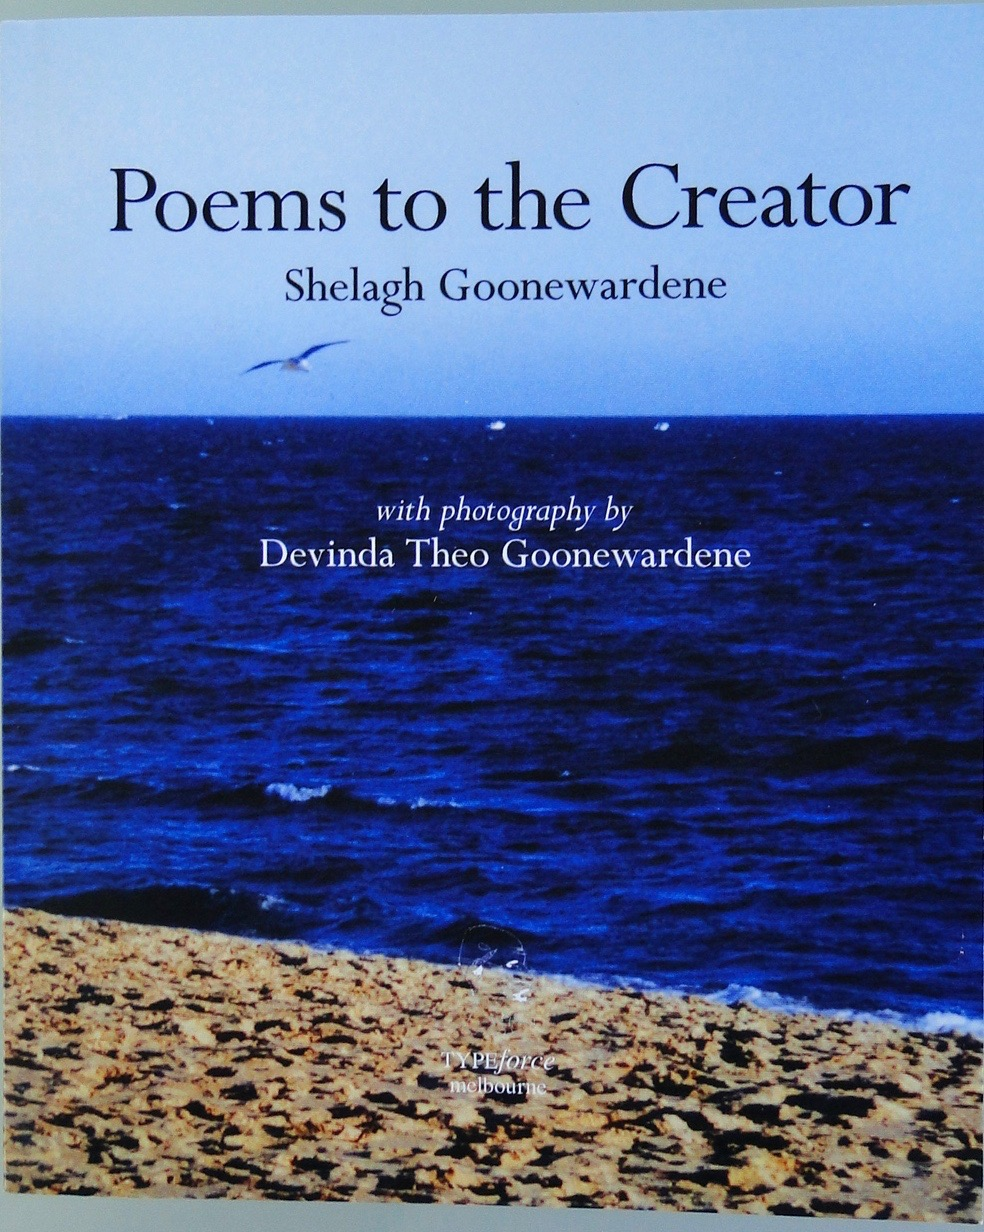 Poems to the Creator / Shelagh Goonewardene